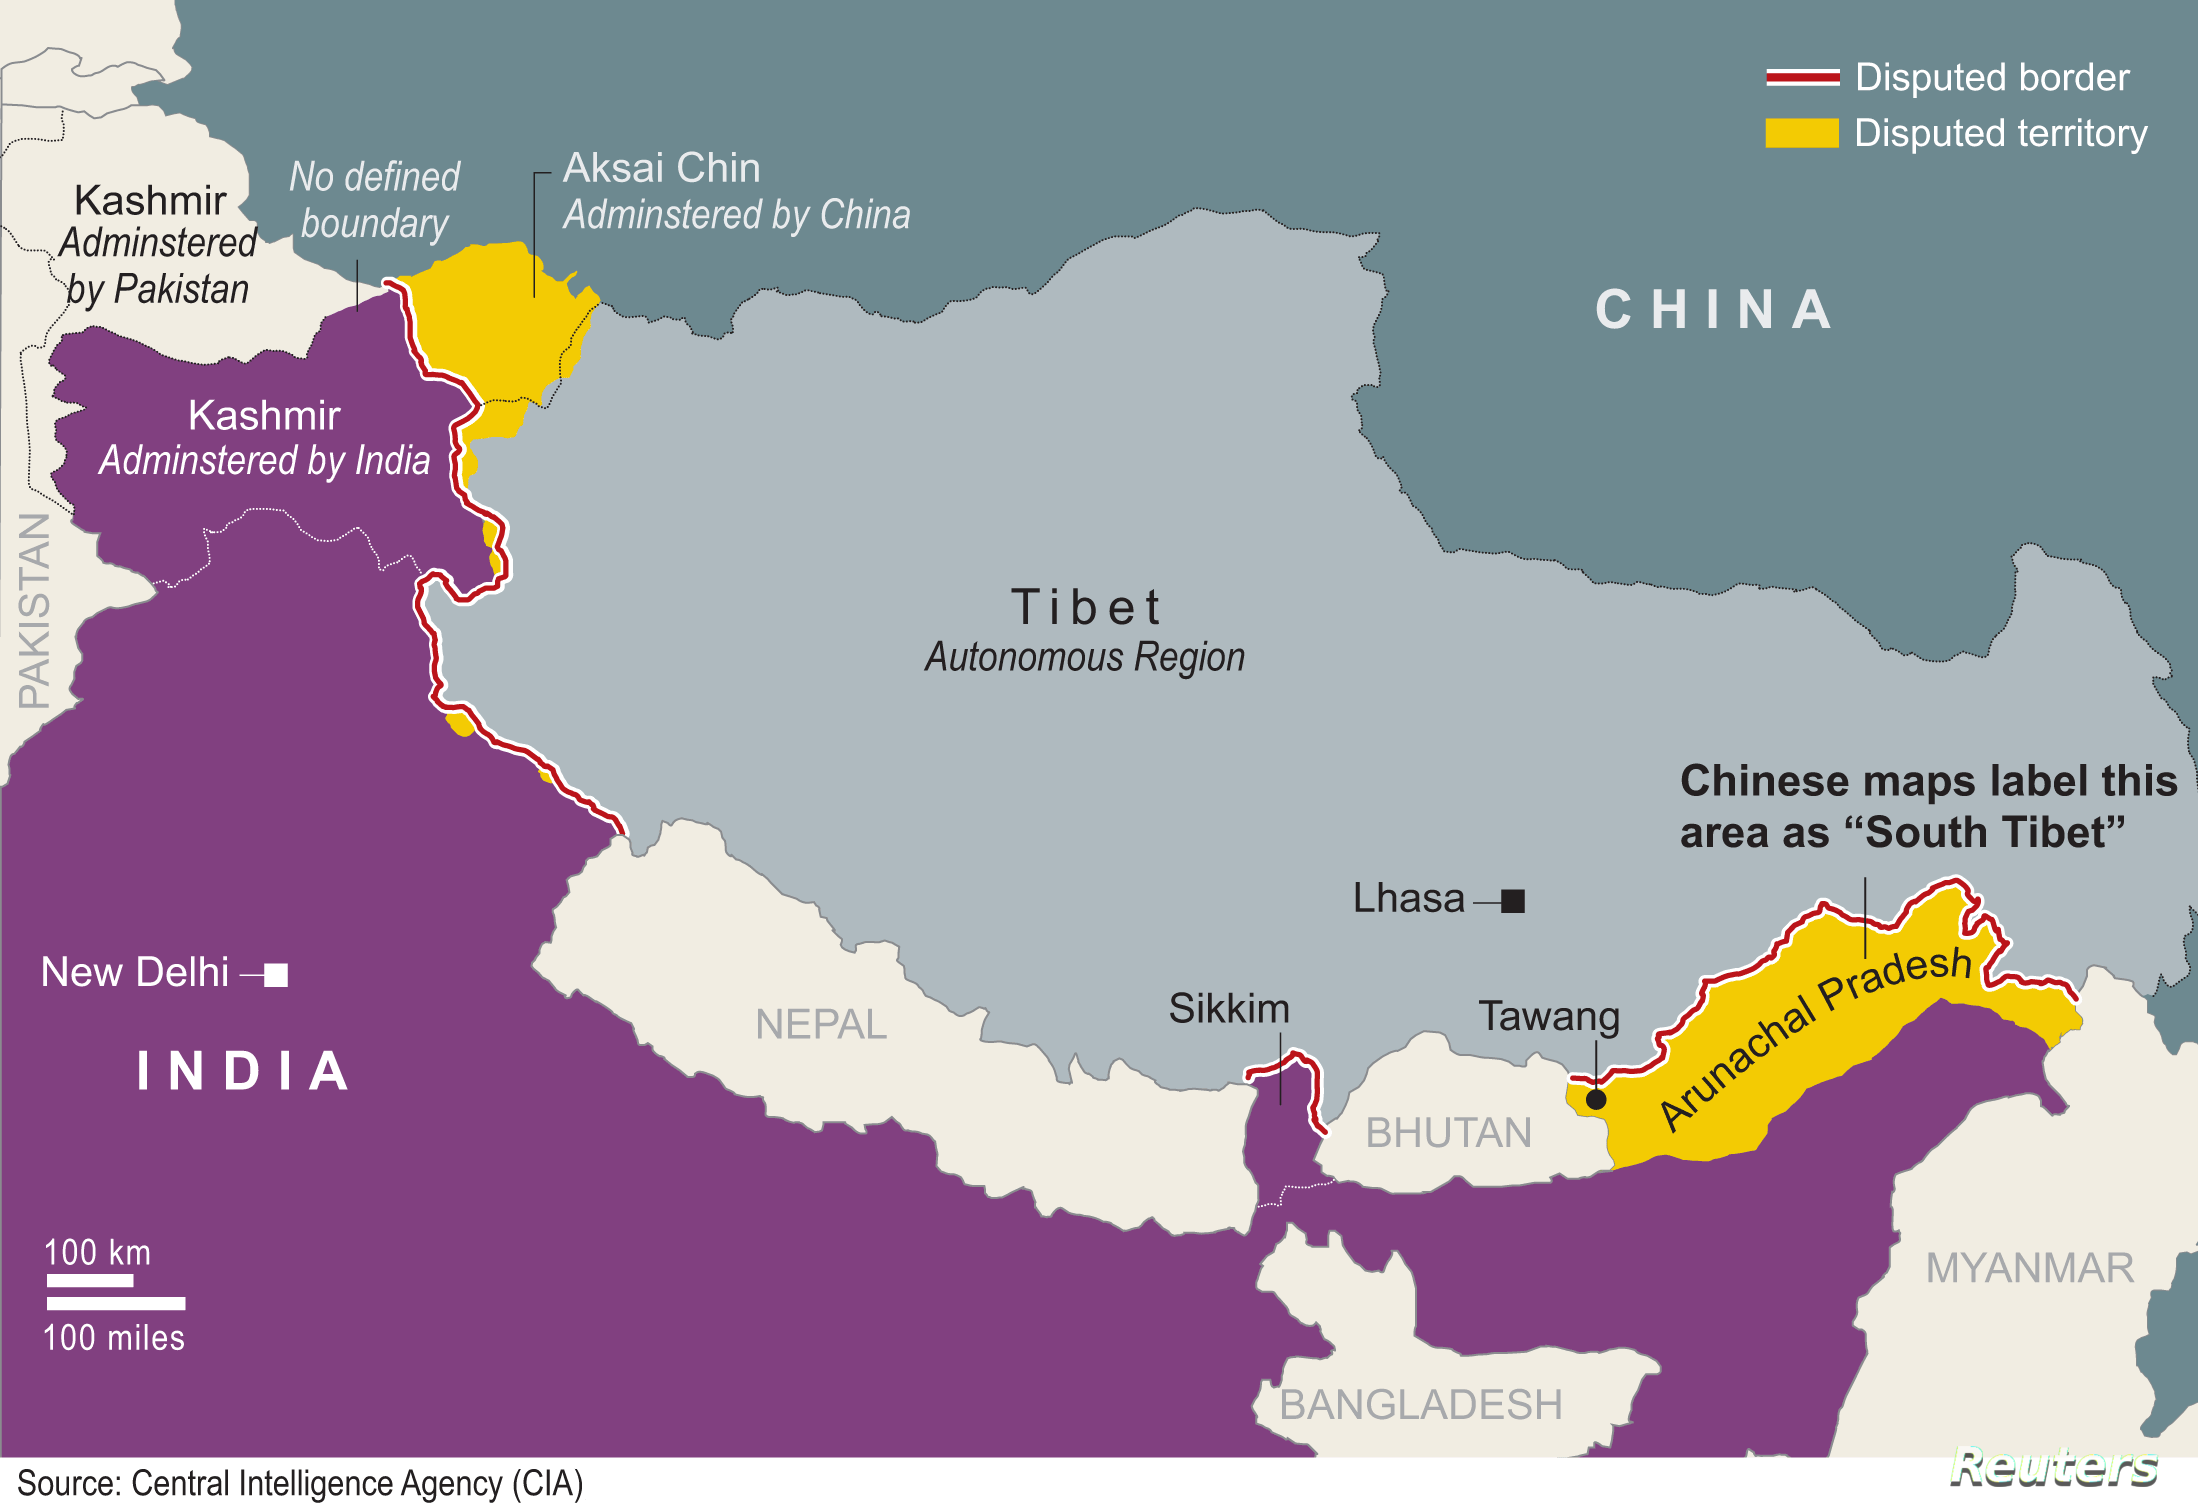 China: India Must Pull Back its Troops Amid Border Standoff | Voice on